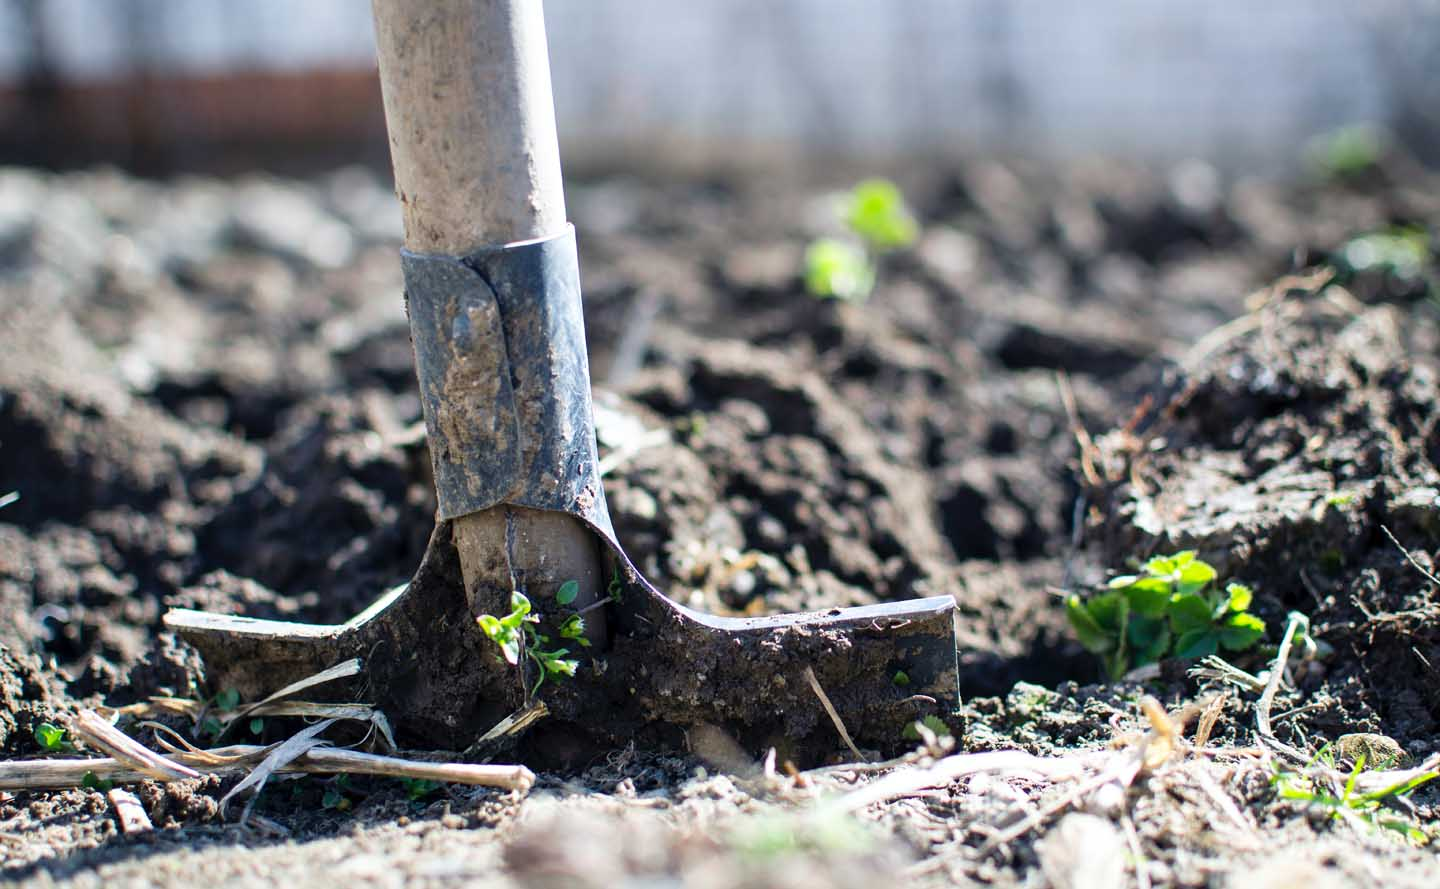 Loosing the soil with a spade - Photo by Lukas from Pexels